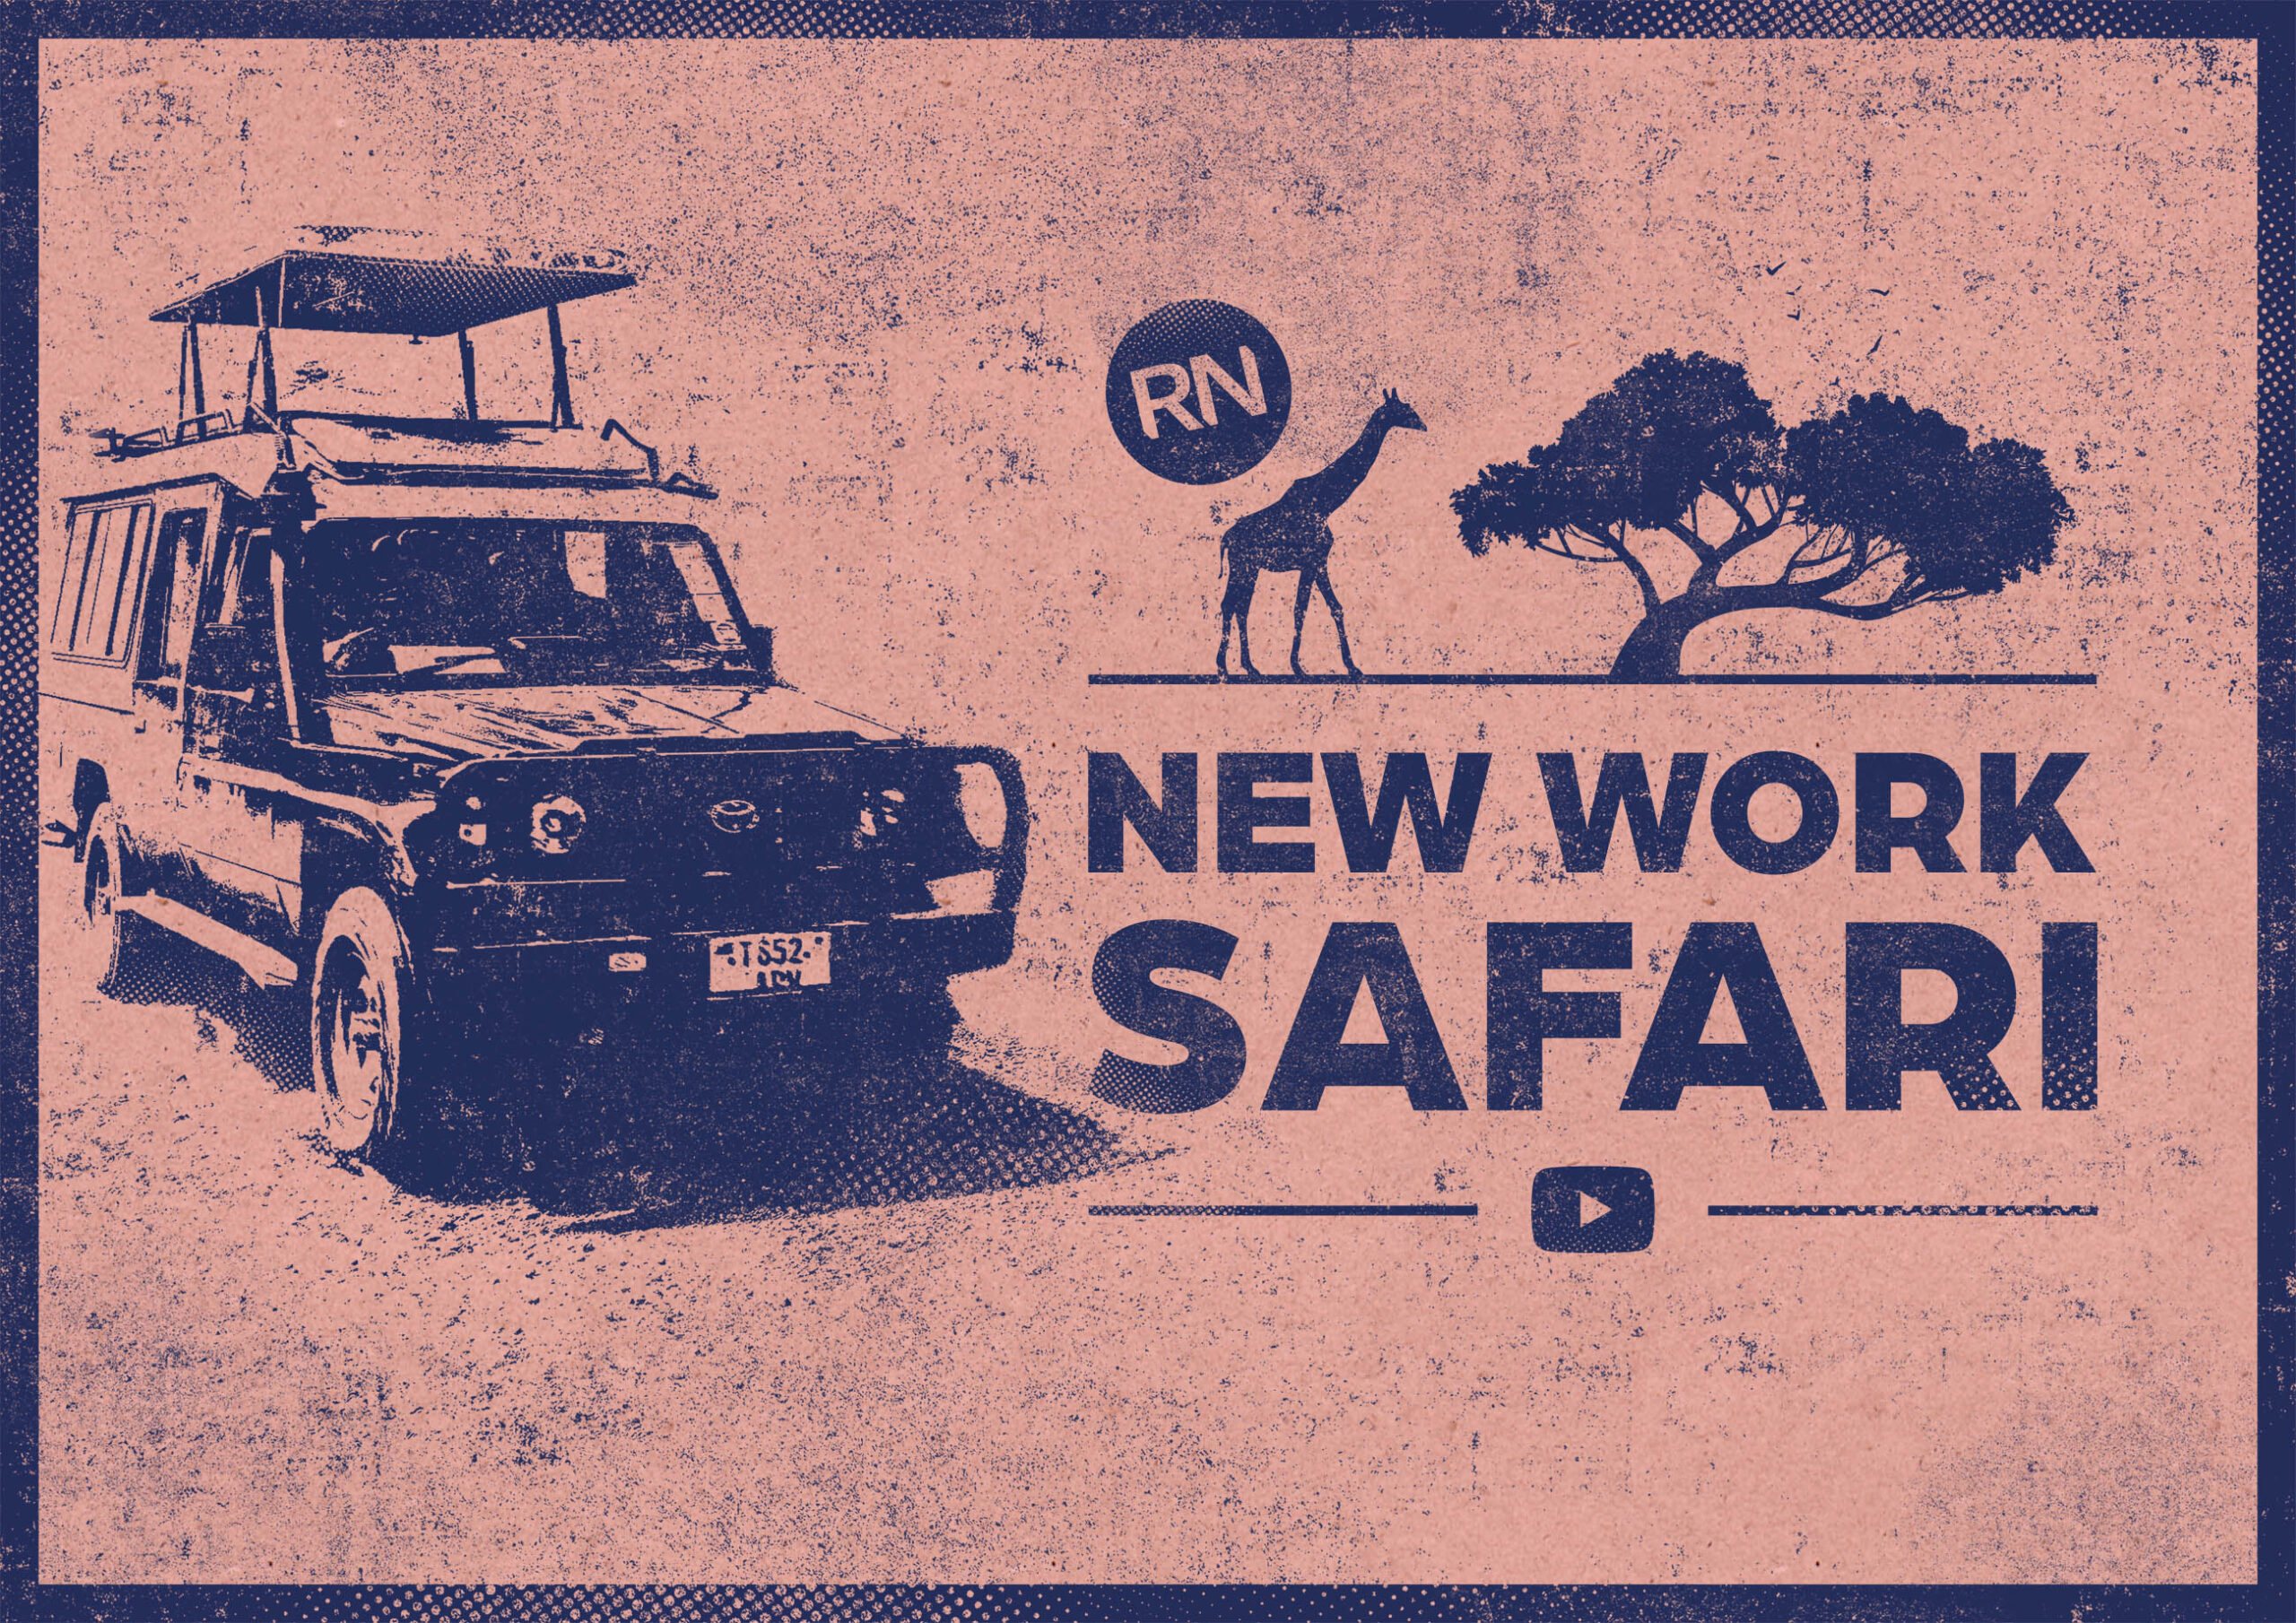 New Work Safari